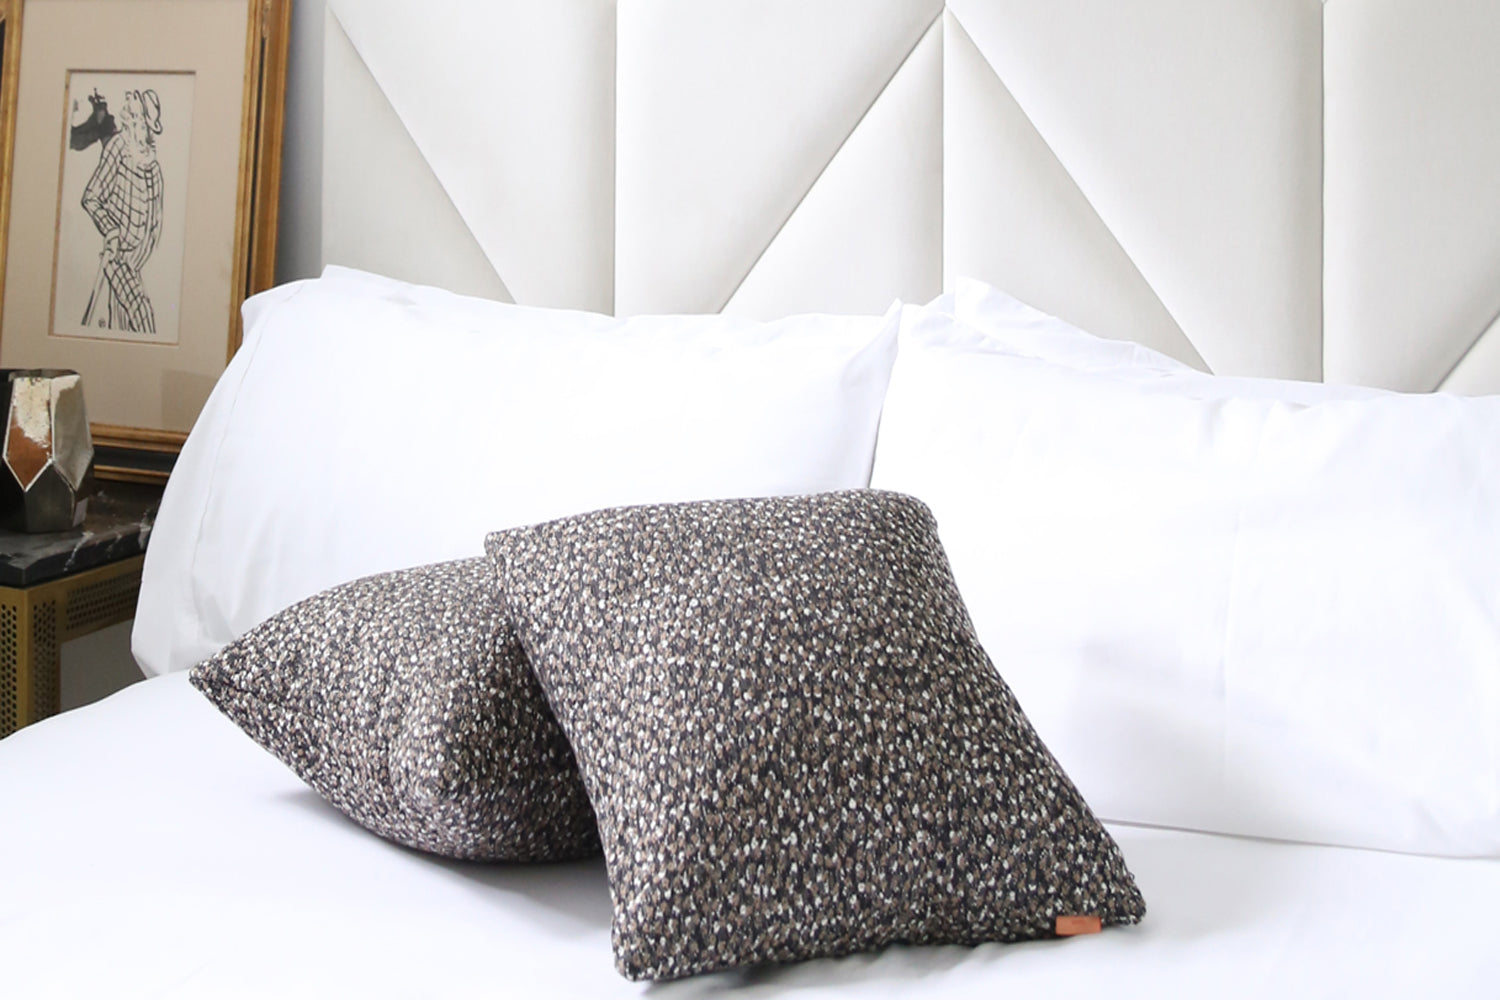 designer fabric toss pillows on a bed